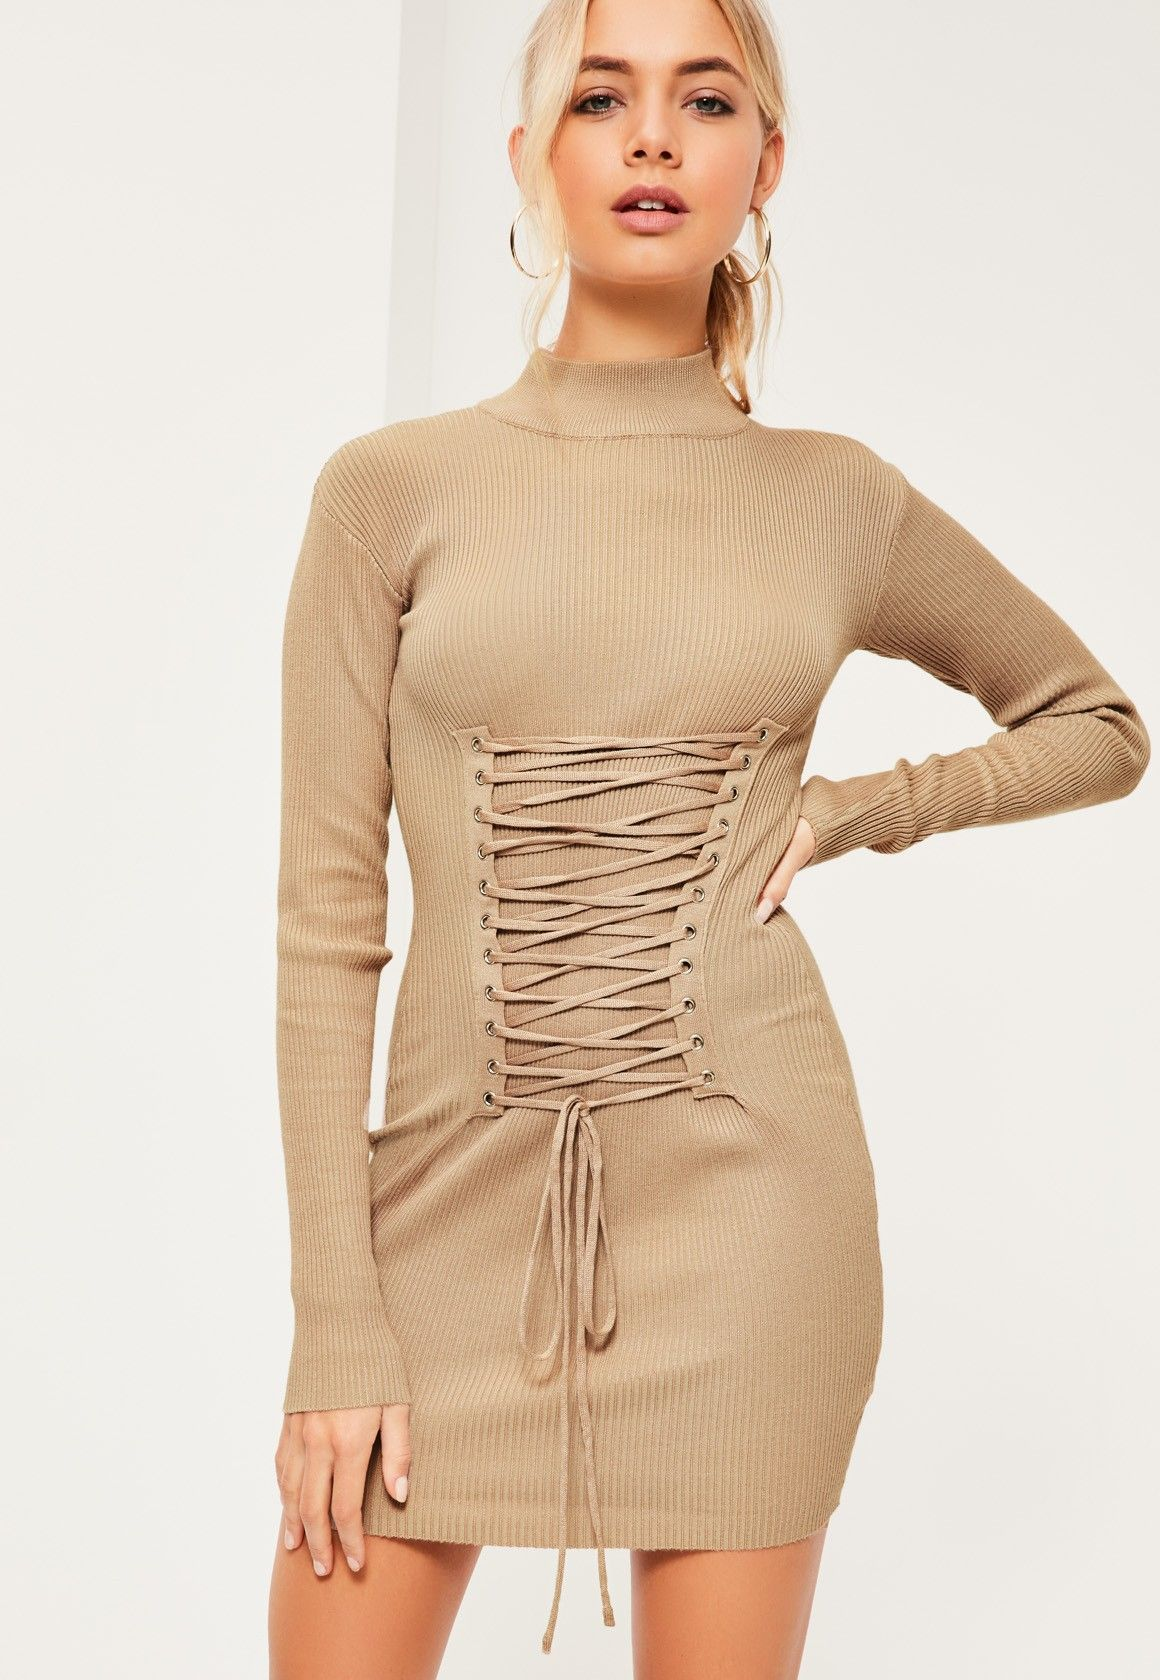 Lace dress for pregnant  In a neutral nude shade this chic corset style jumper dress is